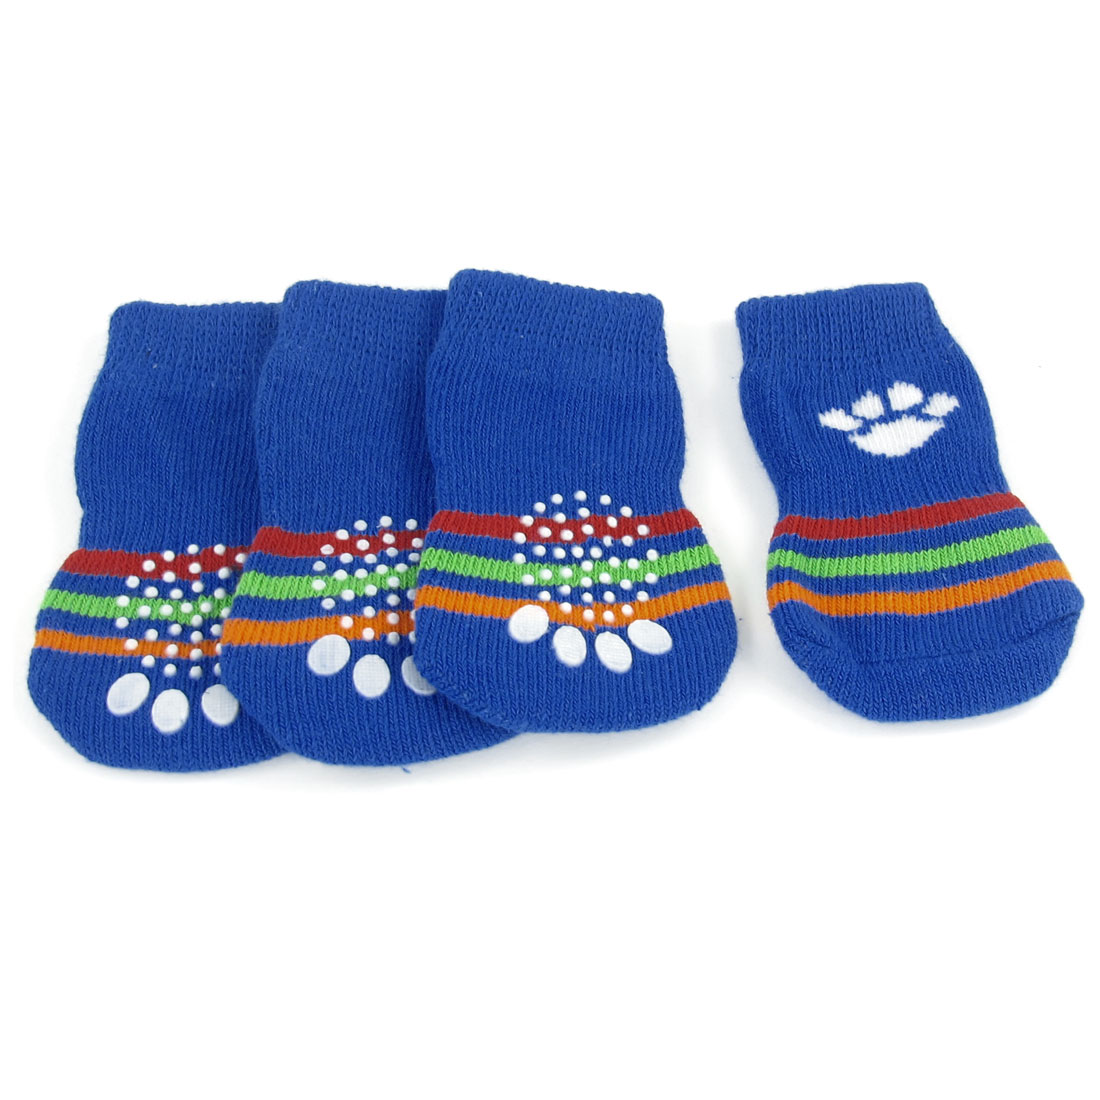 2 Pairs Striped Print Blue White Acrylic Pet Dog Doggie Puppy Socks Size L